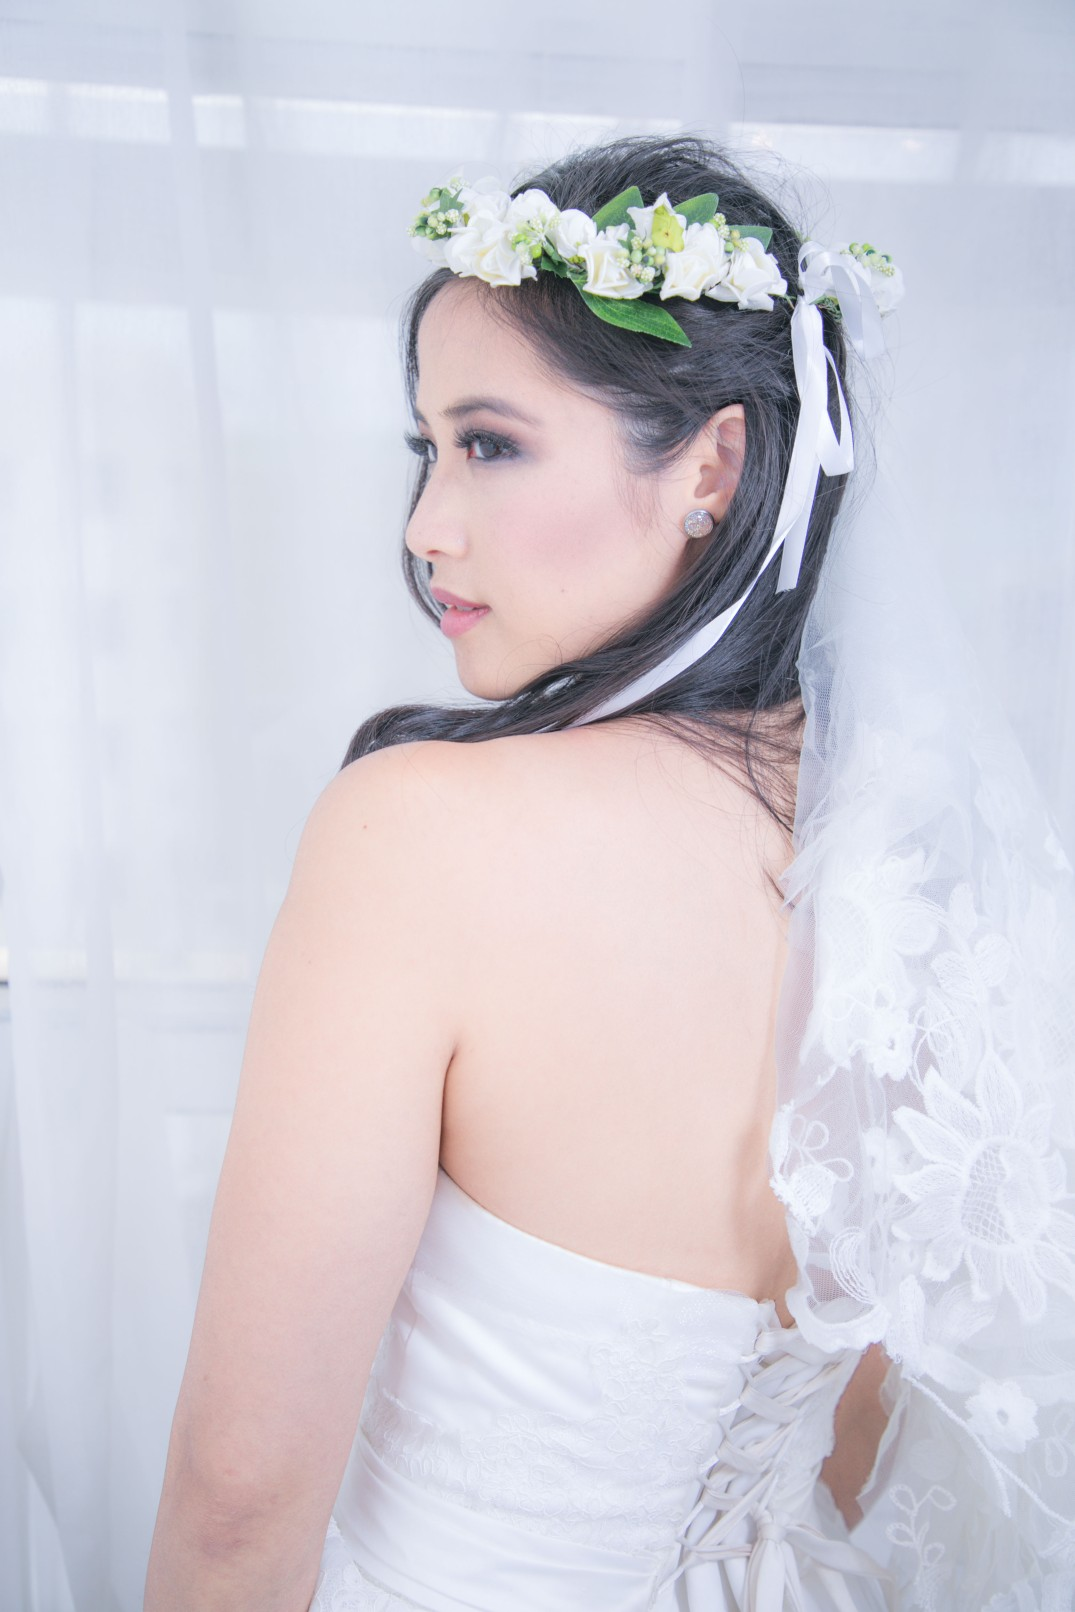 wedding boudoir photography HK by paulstylist-2